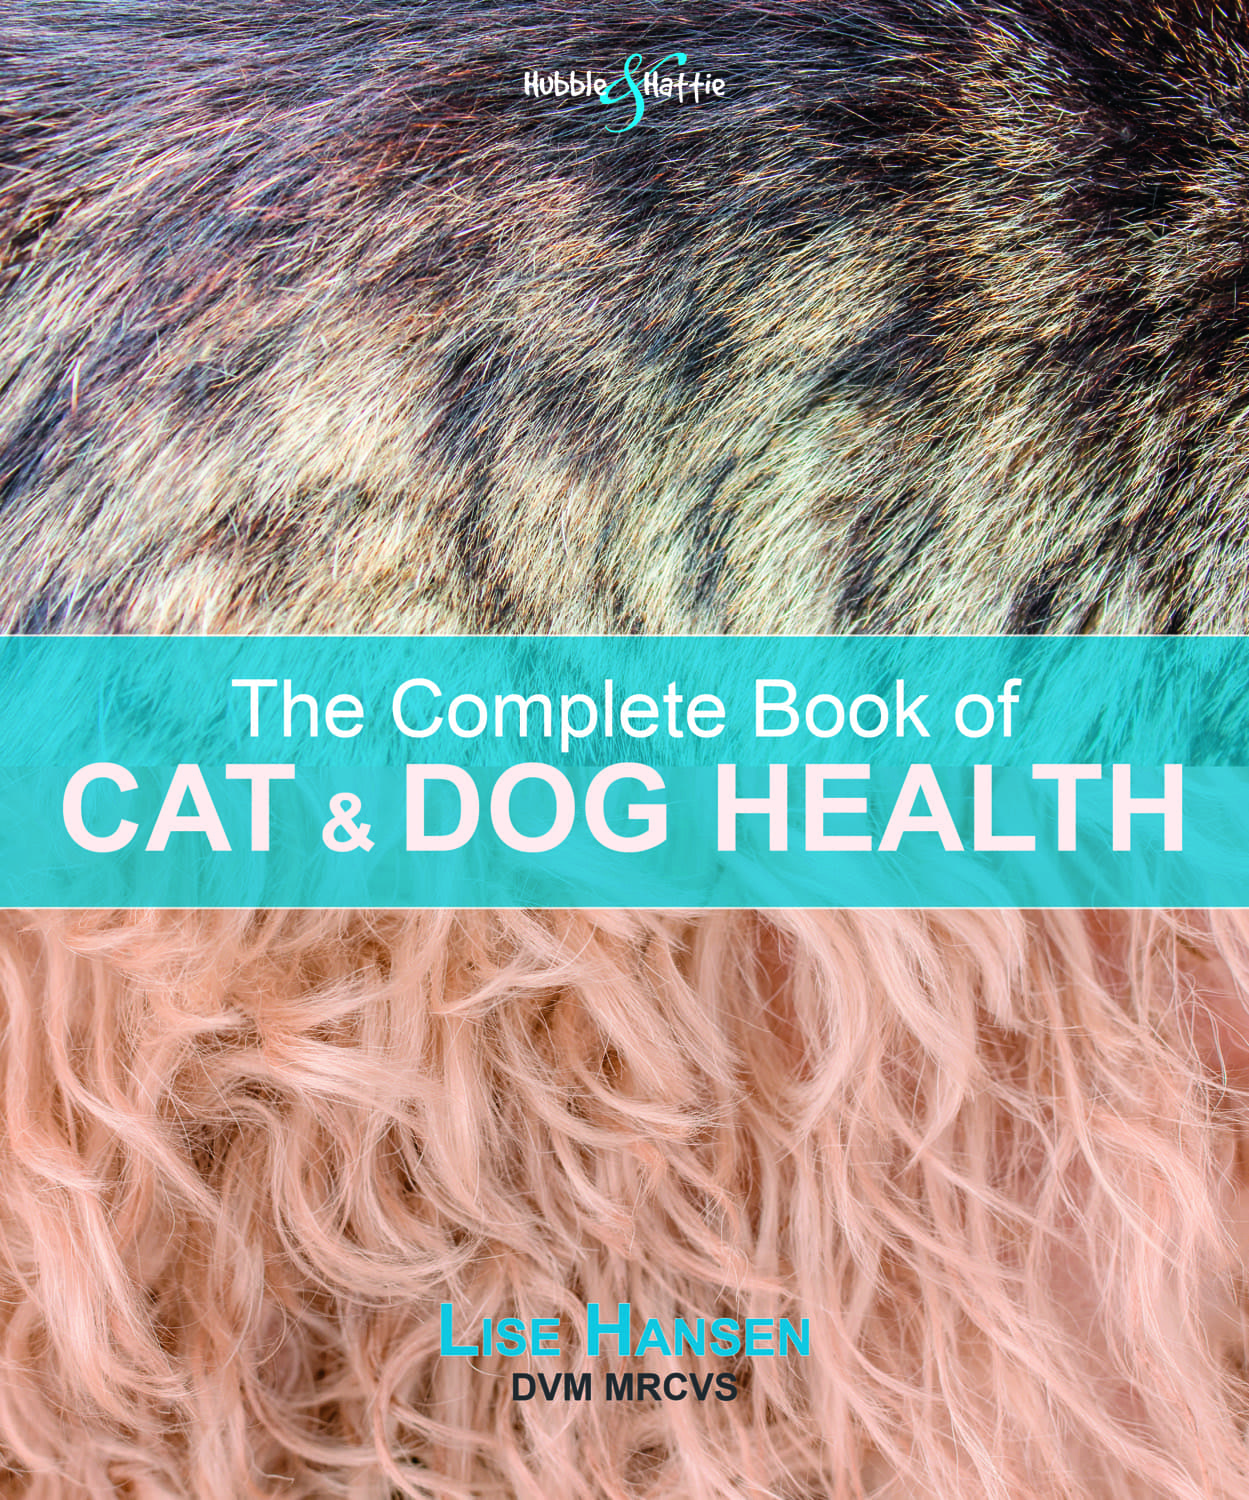 The Complete Book of Cat & Dog Health book cover